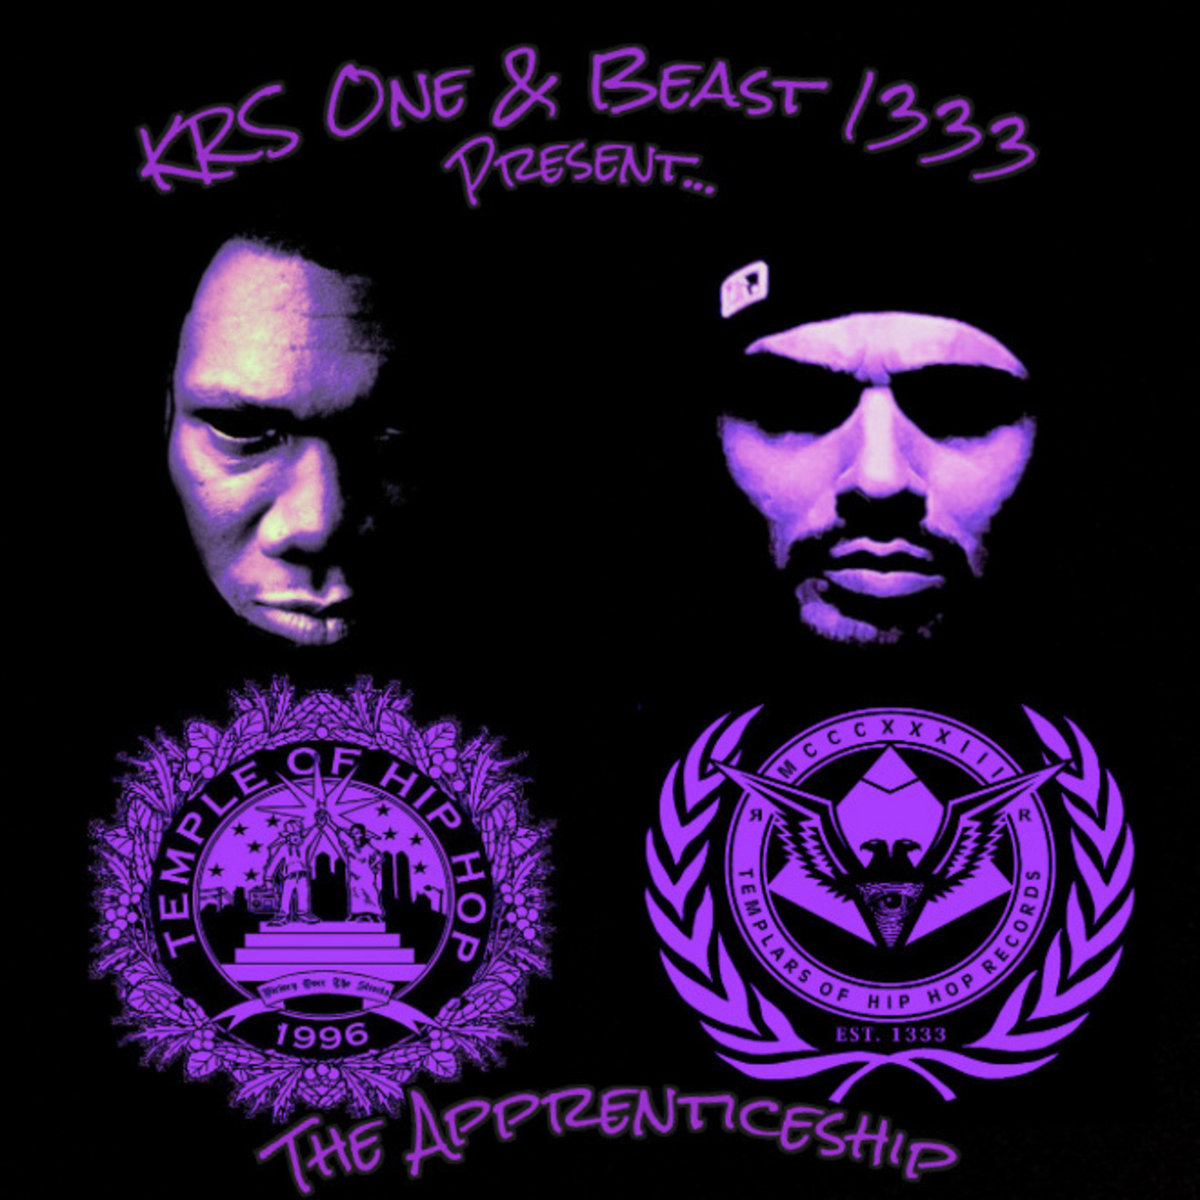 from KRS One & Beast 1333 Present: The Apprenticeship by KRS One & Beast  1333